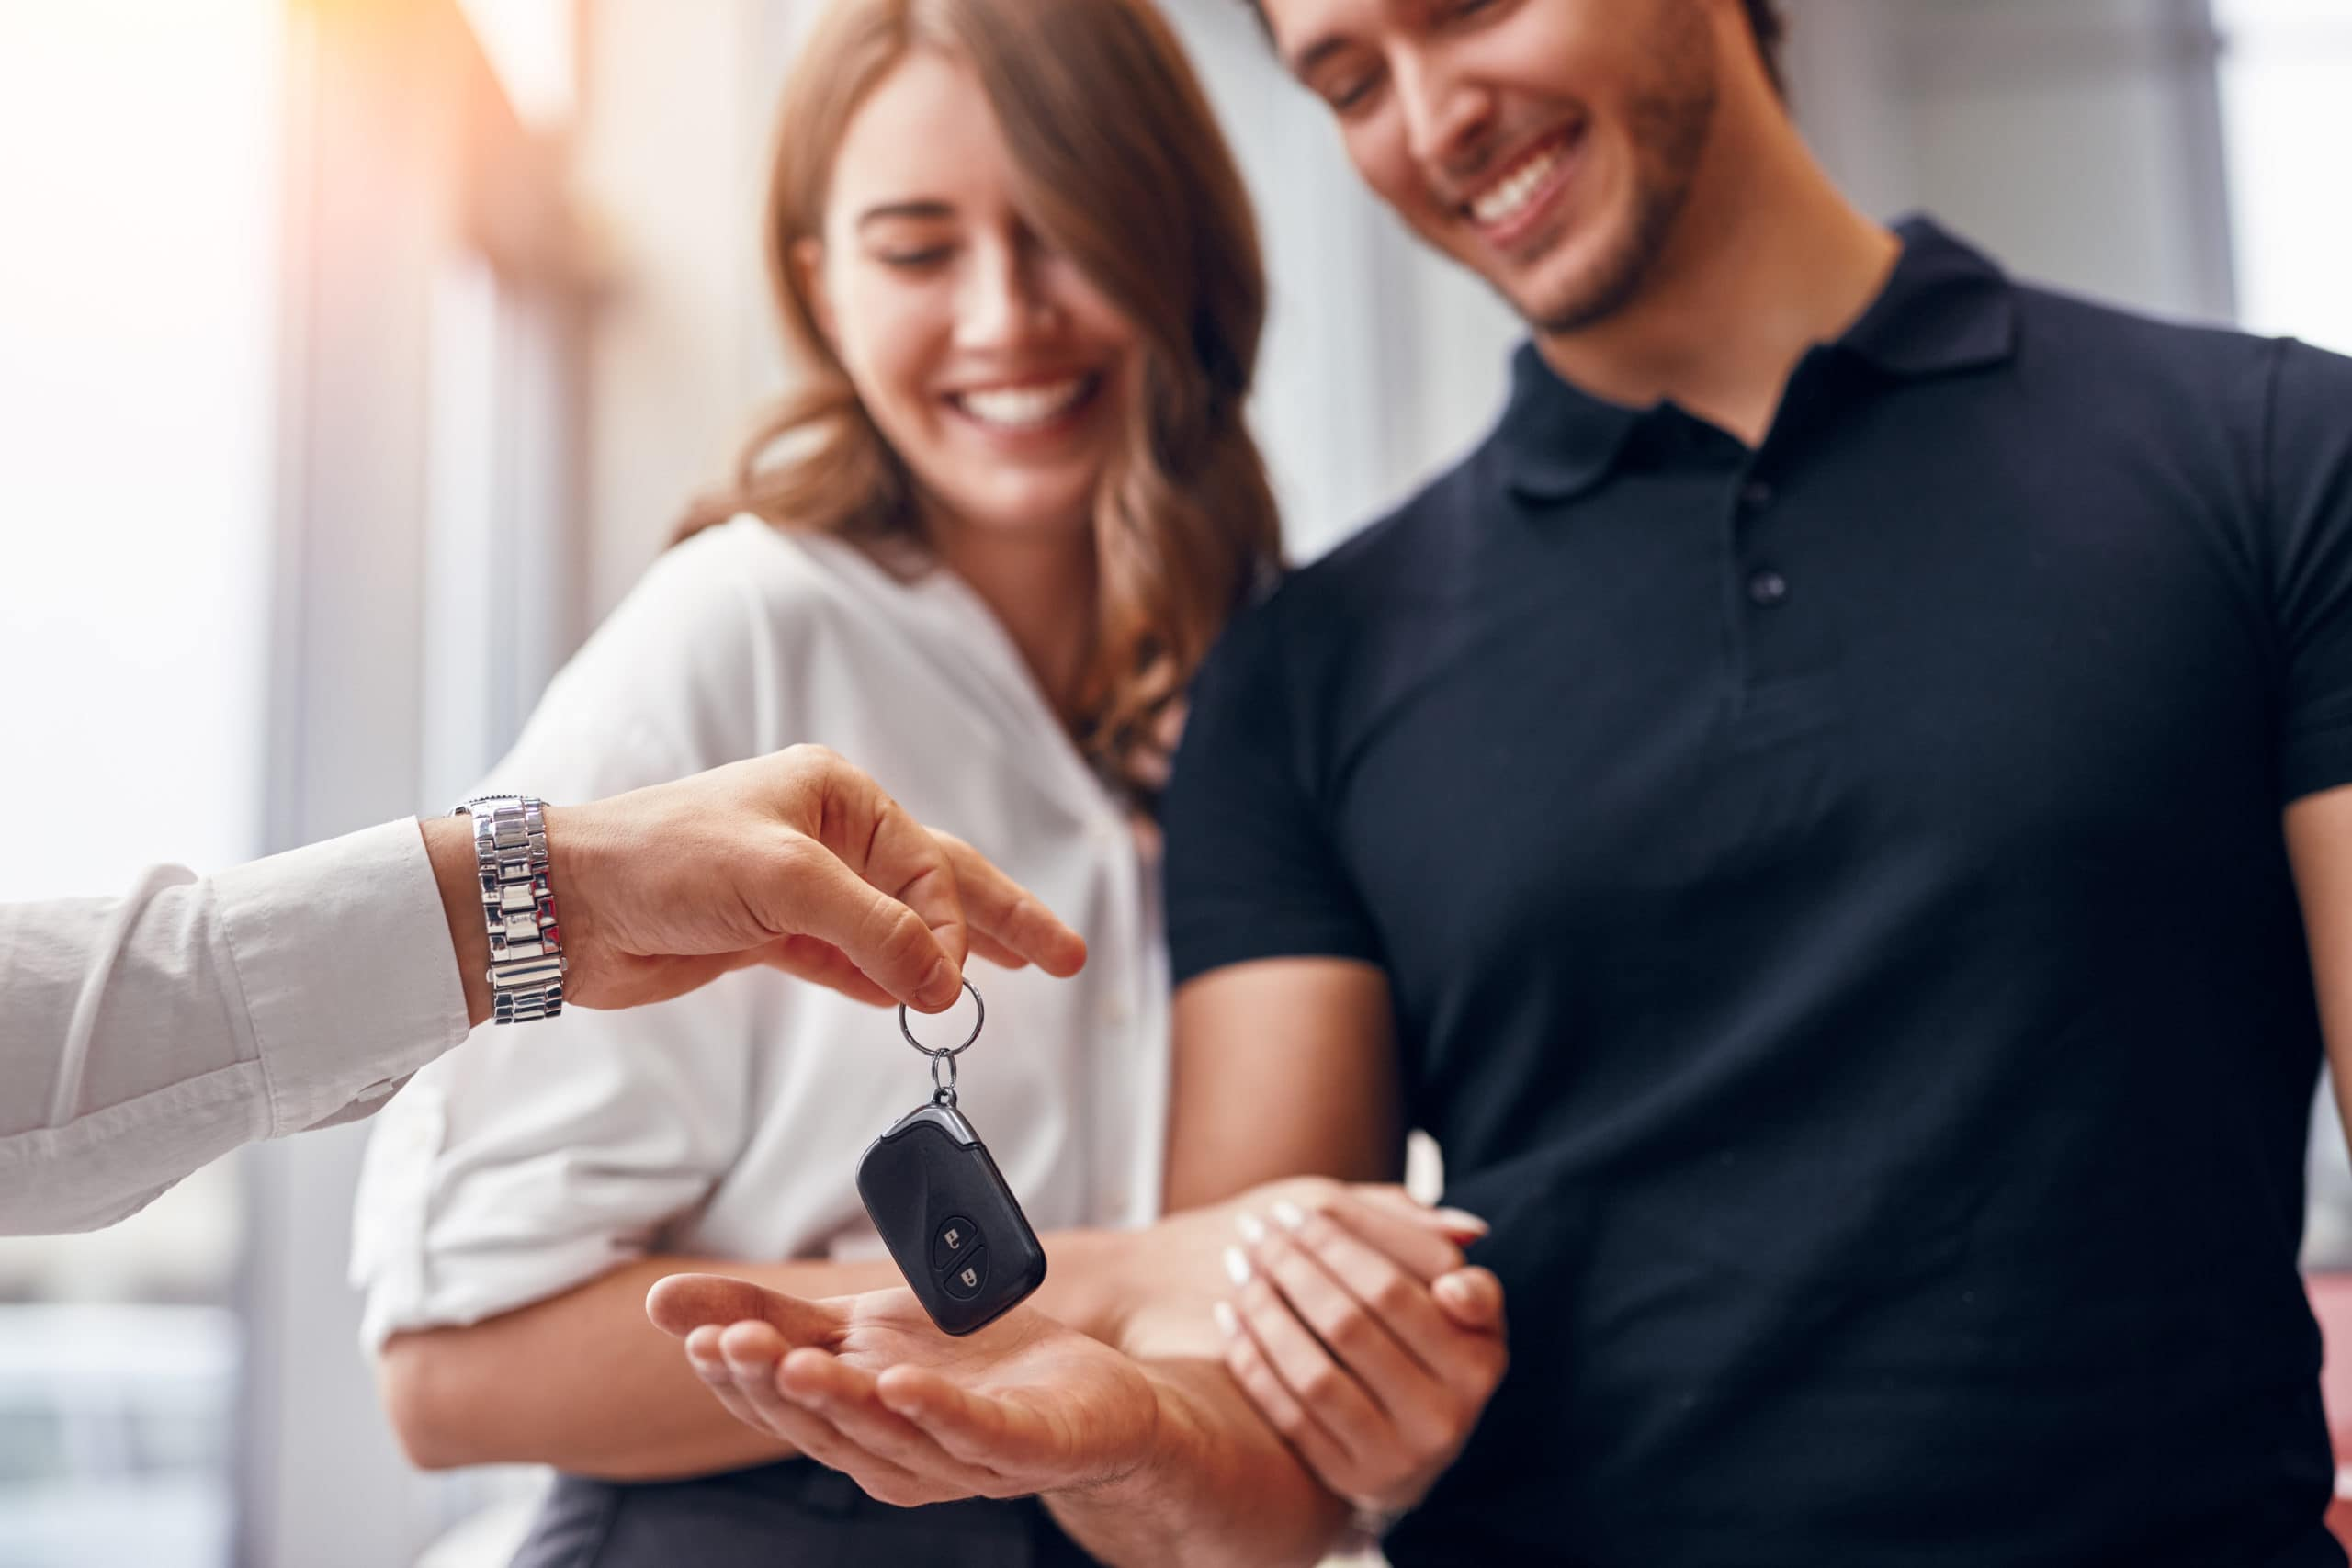 Couple Blurred In Background Smiling While Being Handed Keys To New Vehicle